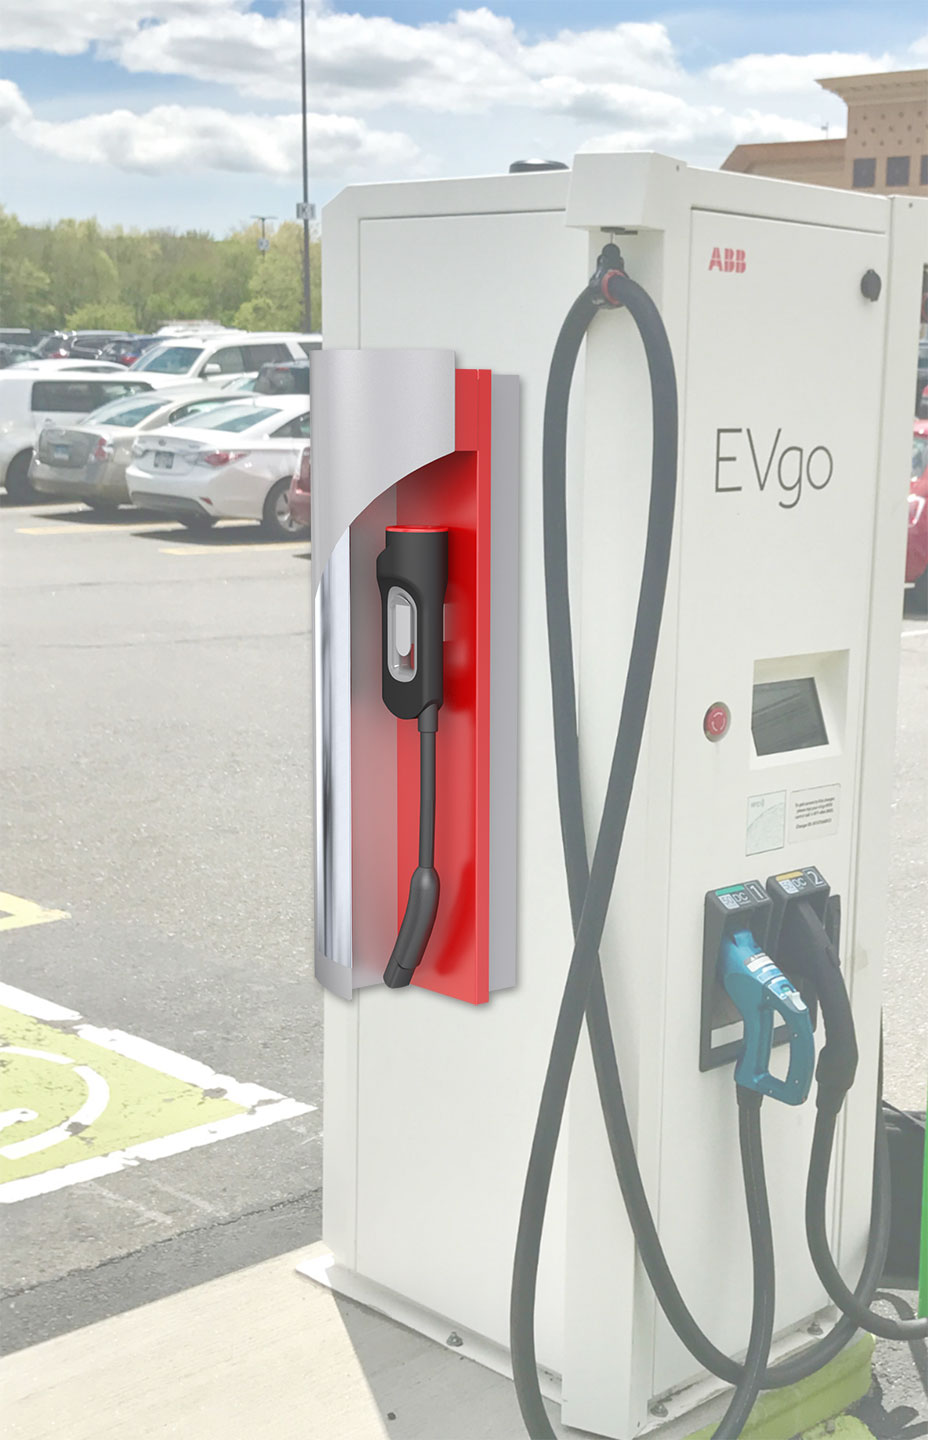 Outdoor electric car charging station for EVgo.